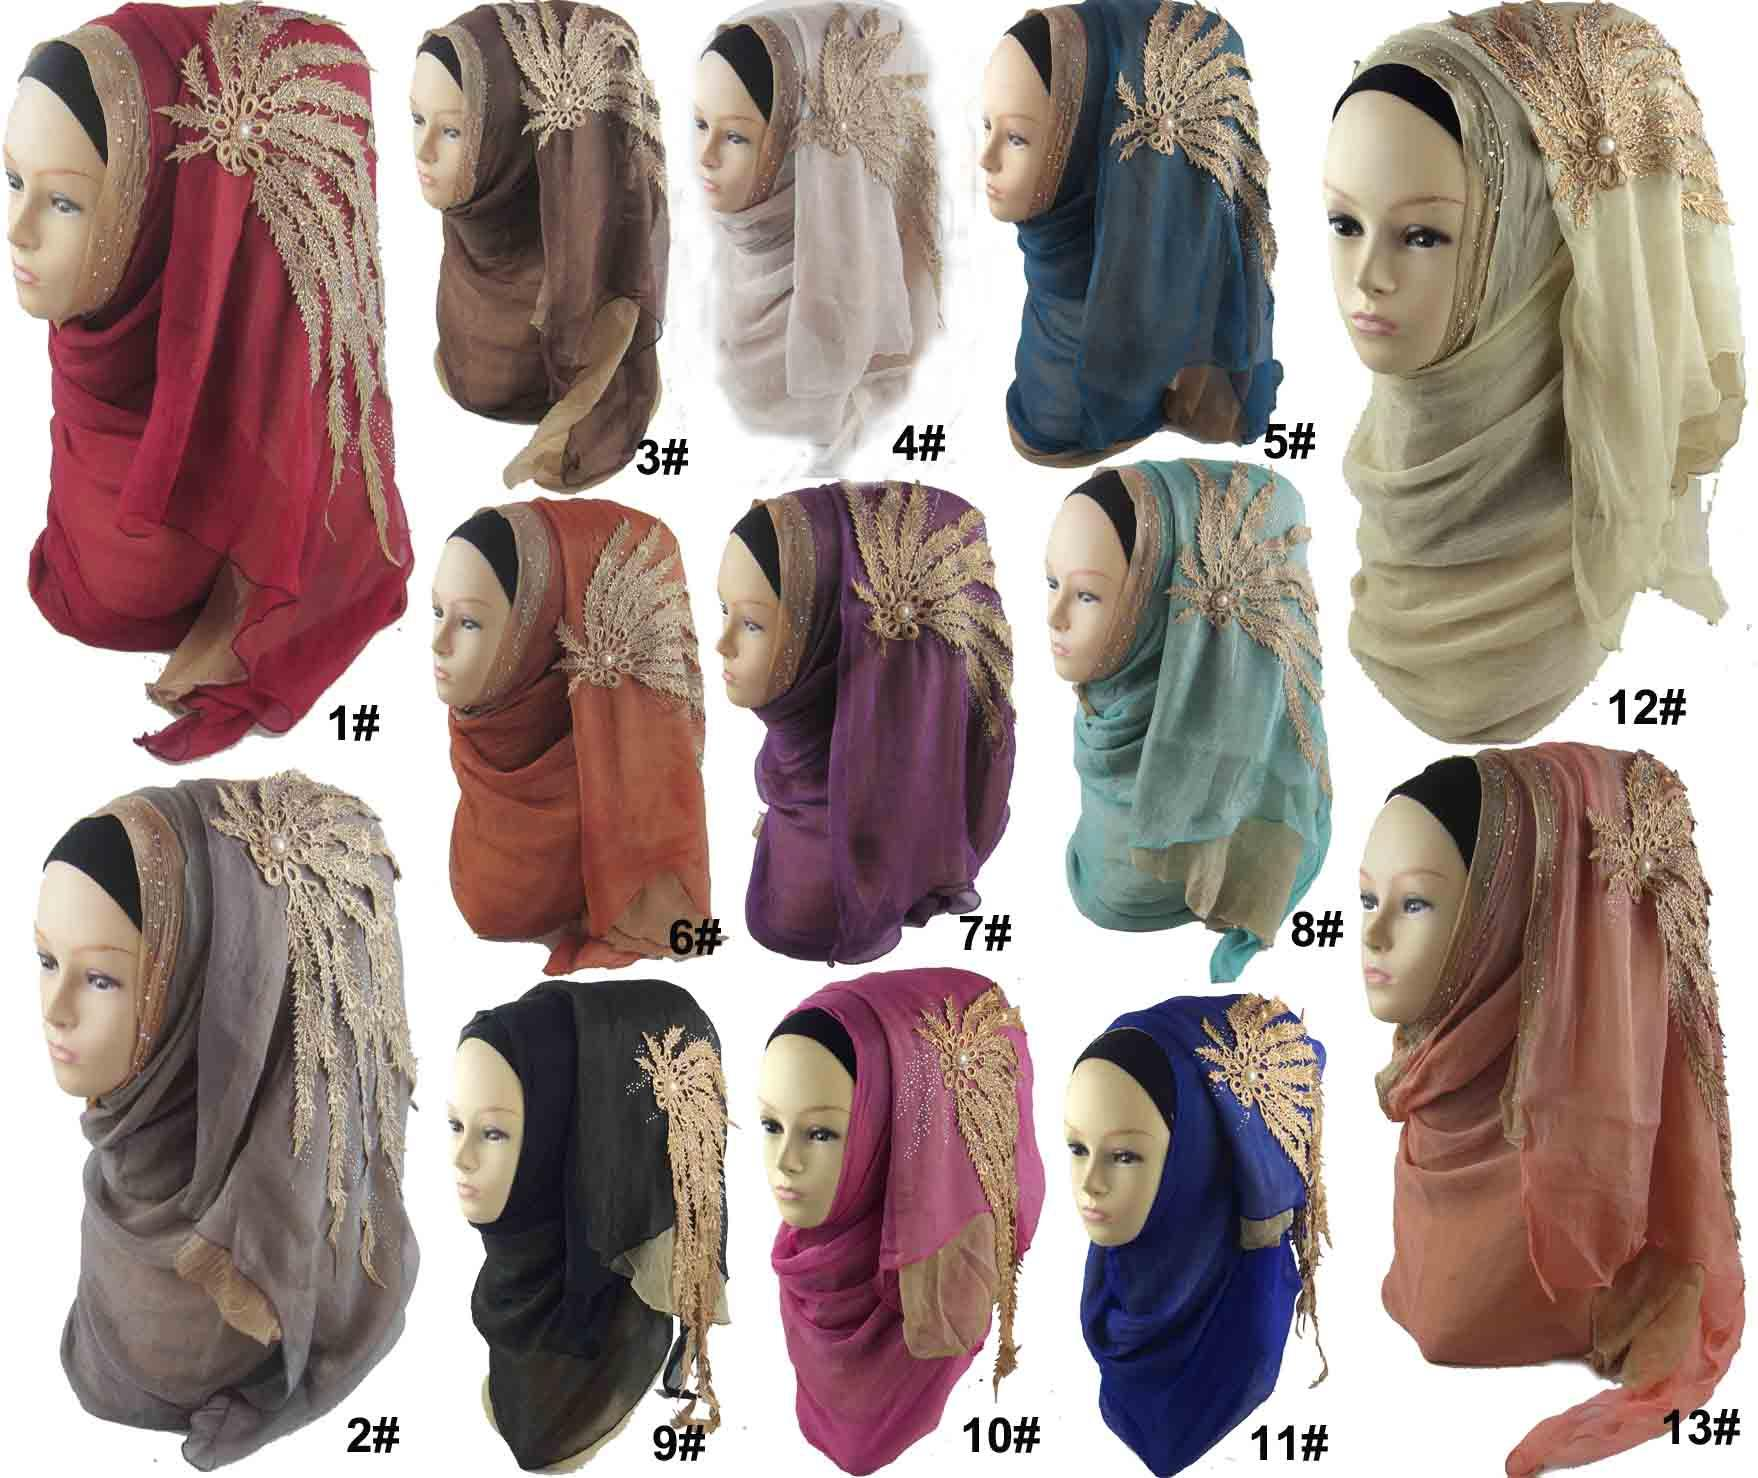 How To Wrap Shawl Hijabs Baby Hijab Online Baby Hijab For Sale